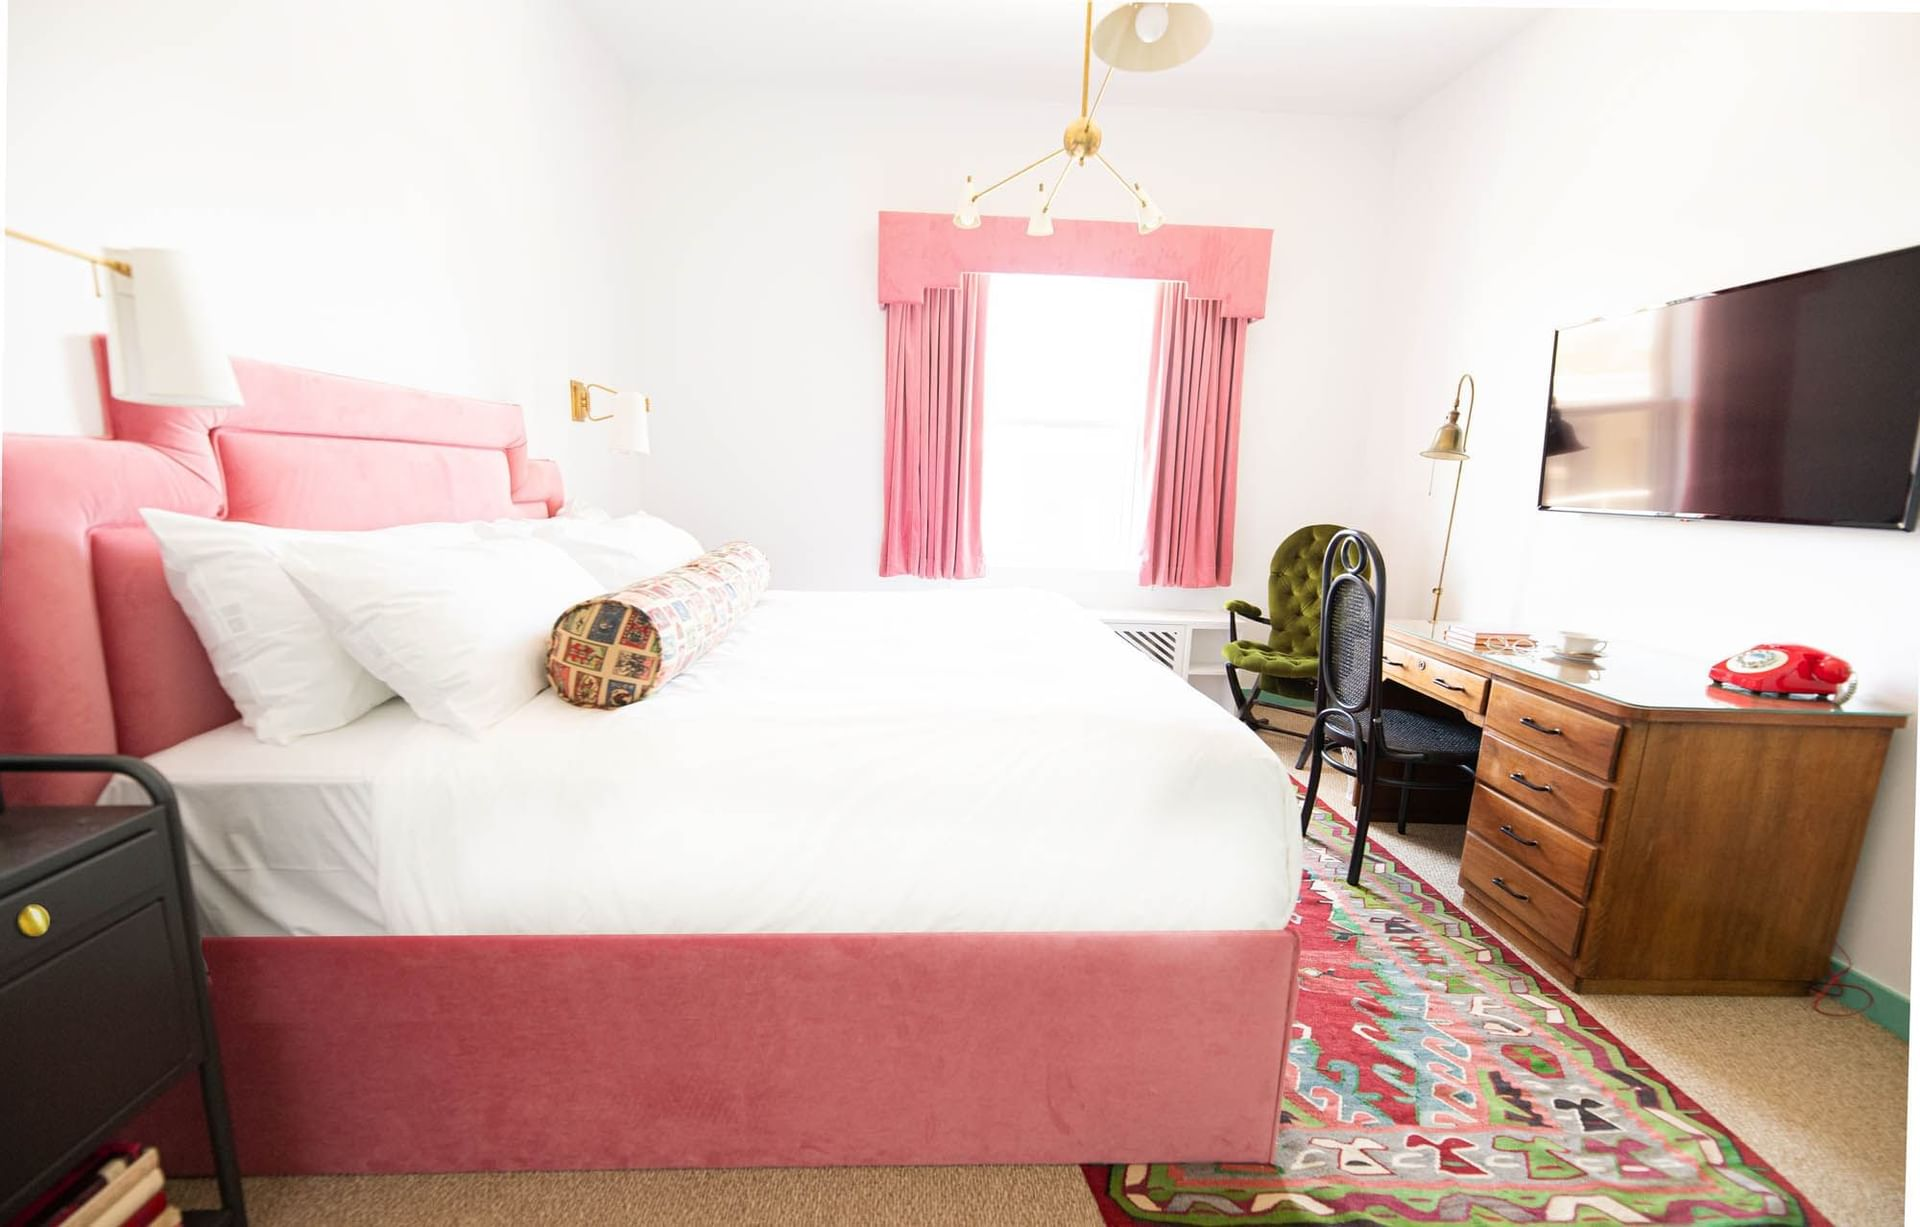 bed with pink bedframe in white room